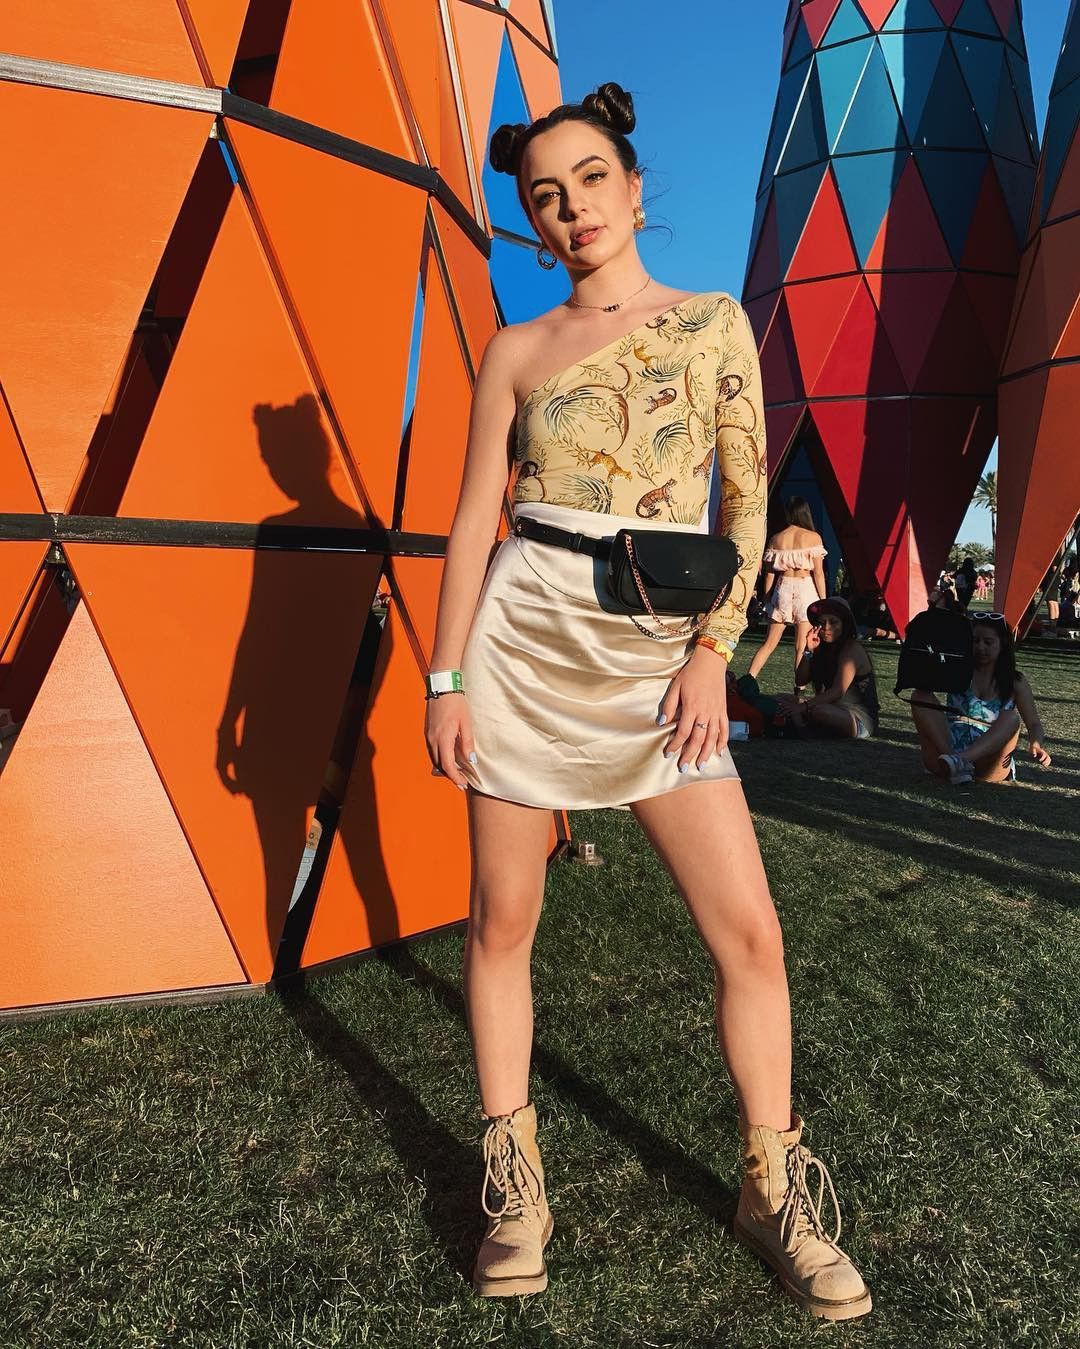 orange colour combination with shorts, best photoshoot ideas, sexy legs